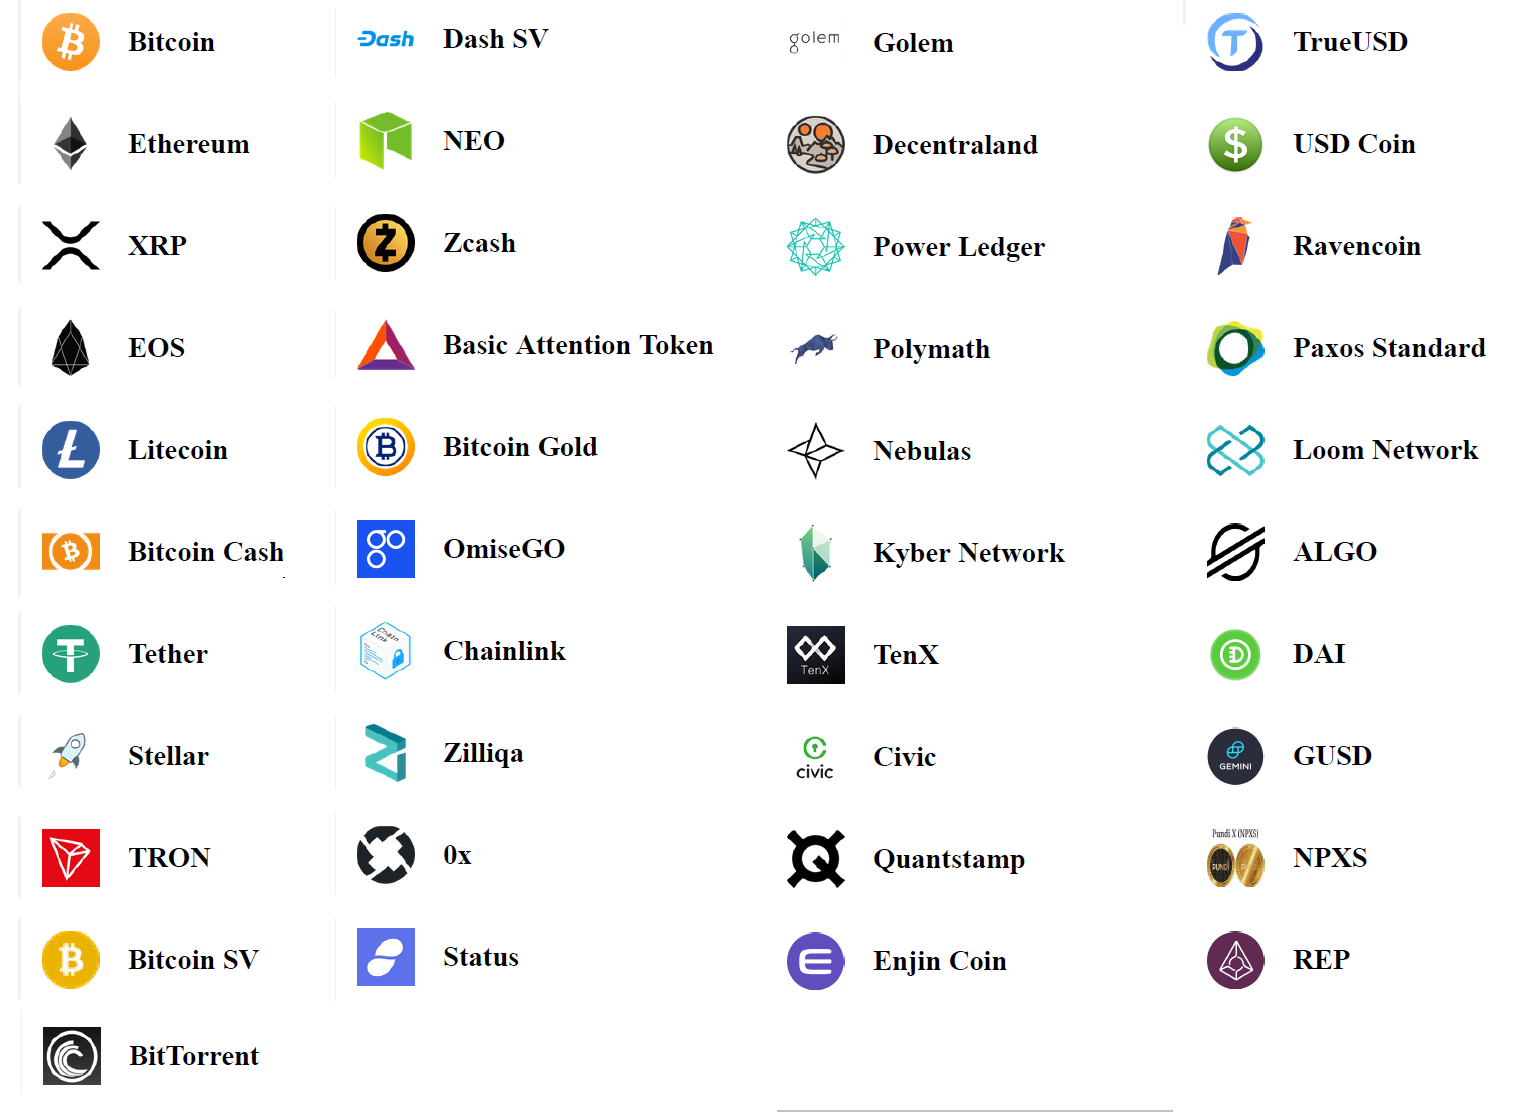 ALGO, Basic Attention Token, Bitcoin, Bitcoin Cash, Bitcoin Gold, Bitcoin SV,  BitTorrent, Chainlink, Civic, DAI, Dash SV, Decentraland, Enjin Coin, EOS,  Ethereum, Fetch.AI, Golem, GUSD, Kyber Network, Litecoin, Loom Network,  Nebulas, NEO, NPXS, OmiseGO, Paxos Standard, Polymath, Power Ledger,  Quantstamp, Ravencoin, REP, Status, Stellar, TenX, Tether, TRON, TrueUSD,  USD Coin, XRP, Zcash, Zilliqa,